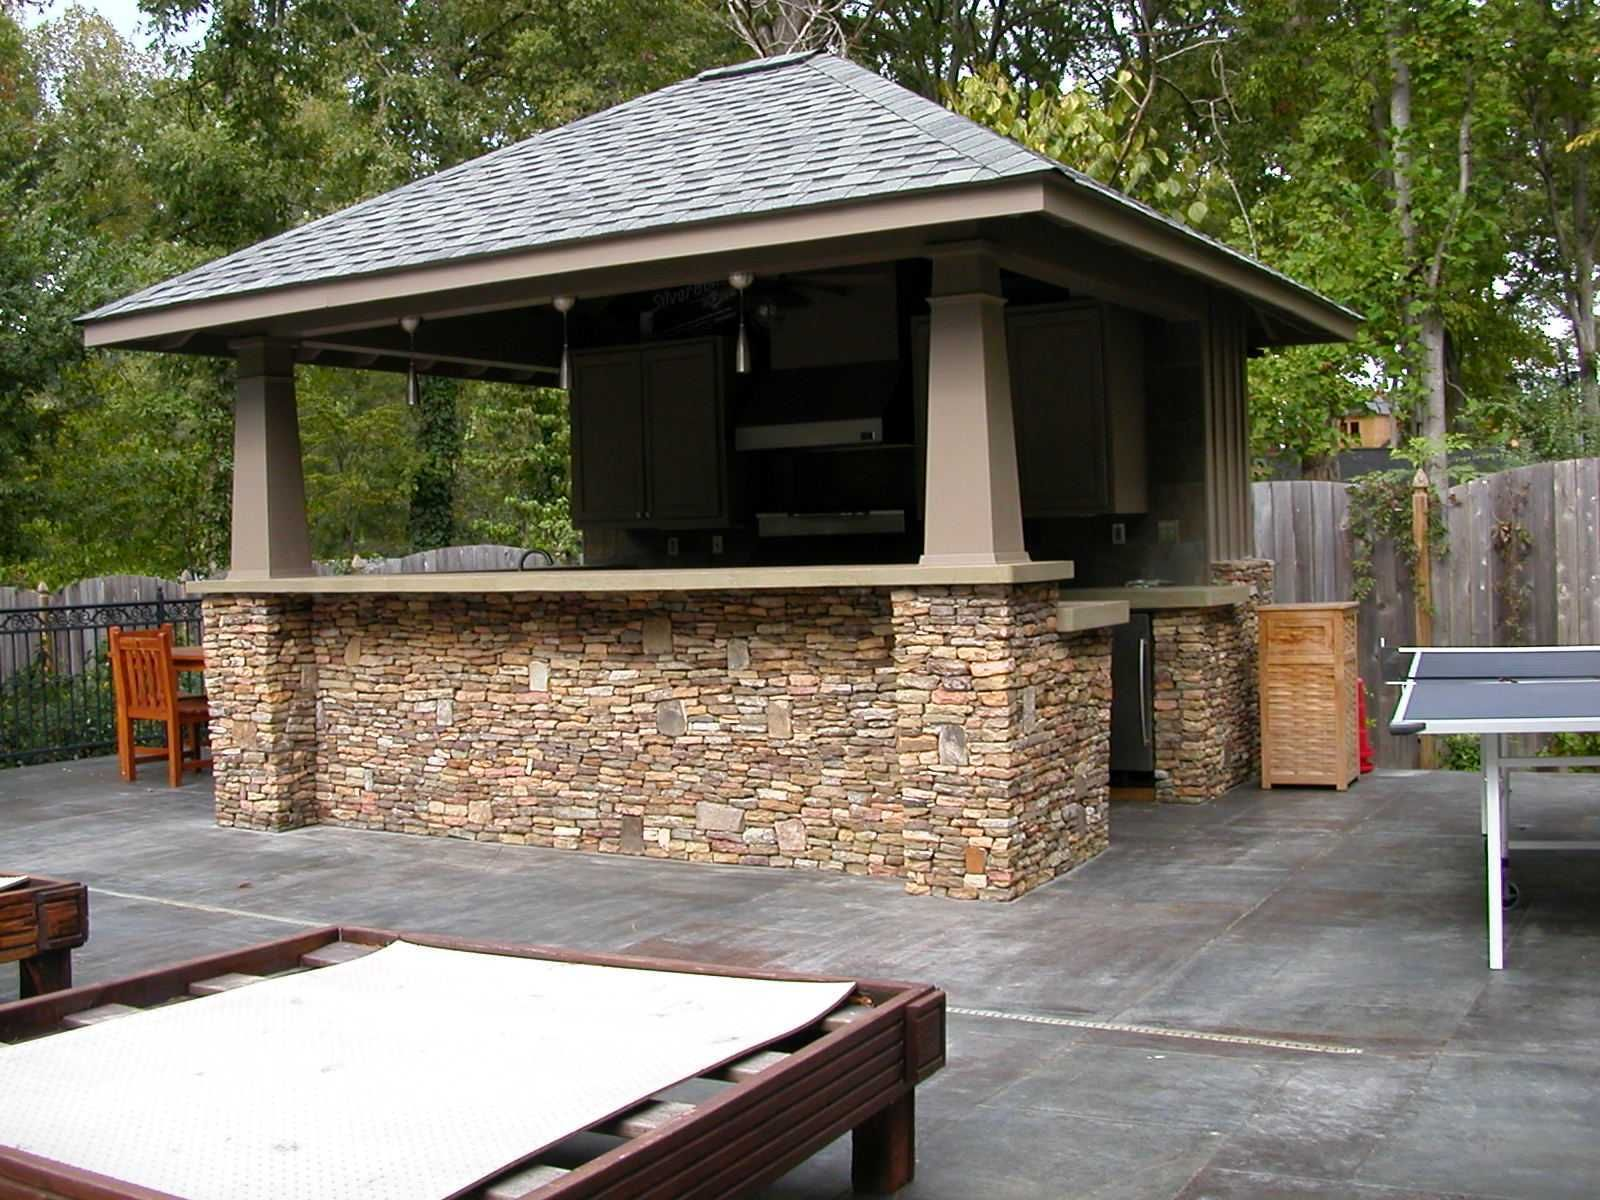 Commercial Kitchen For Rent Morris County Nj